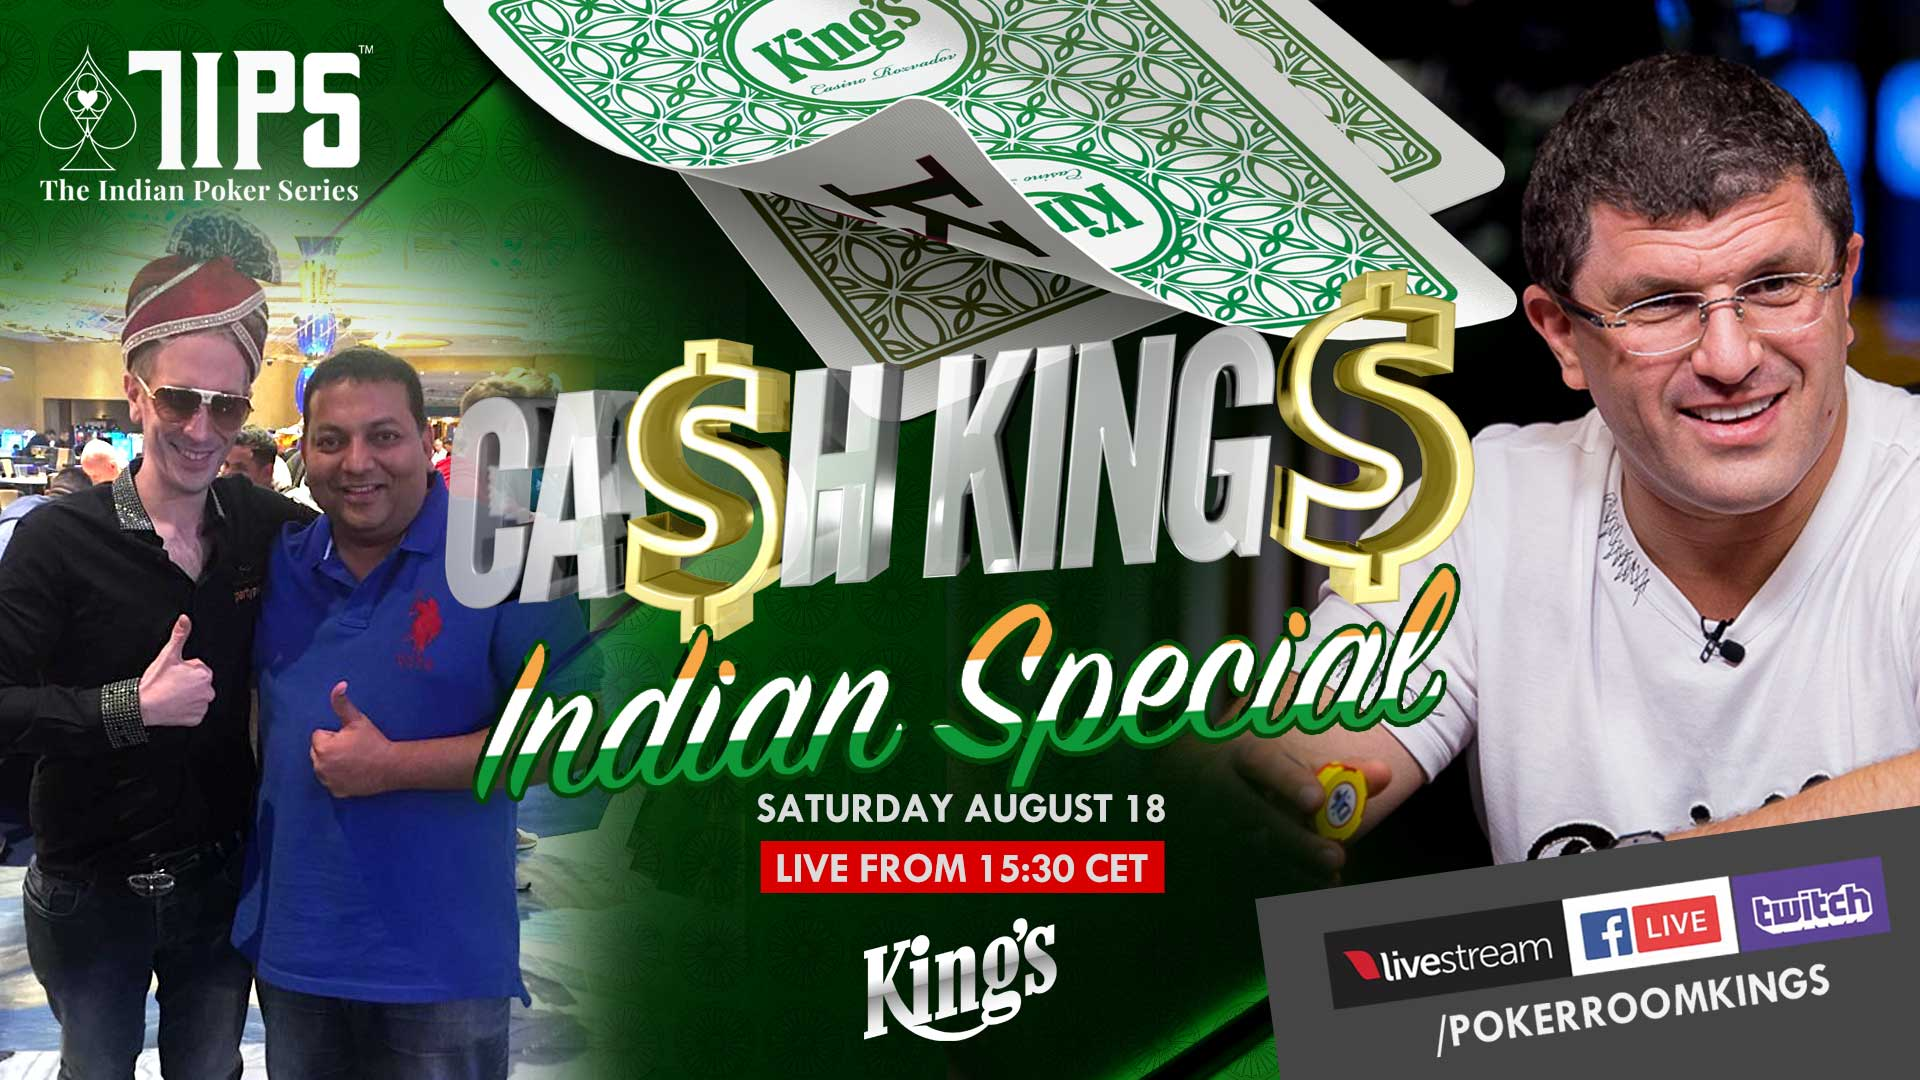 Cash kings Indian Special